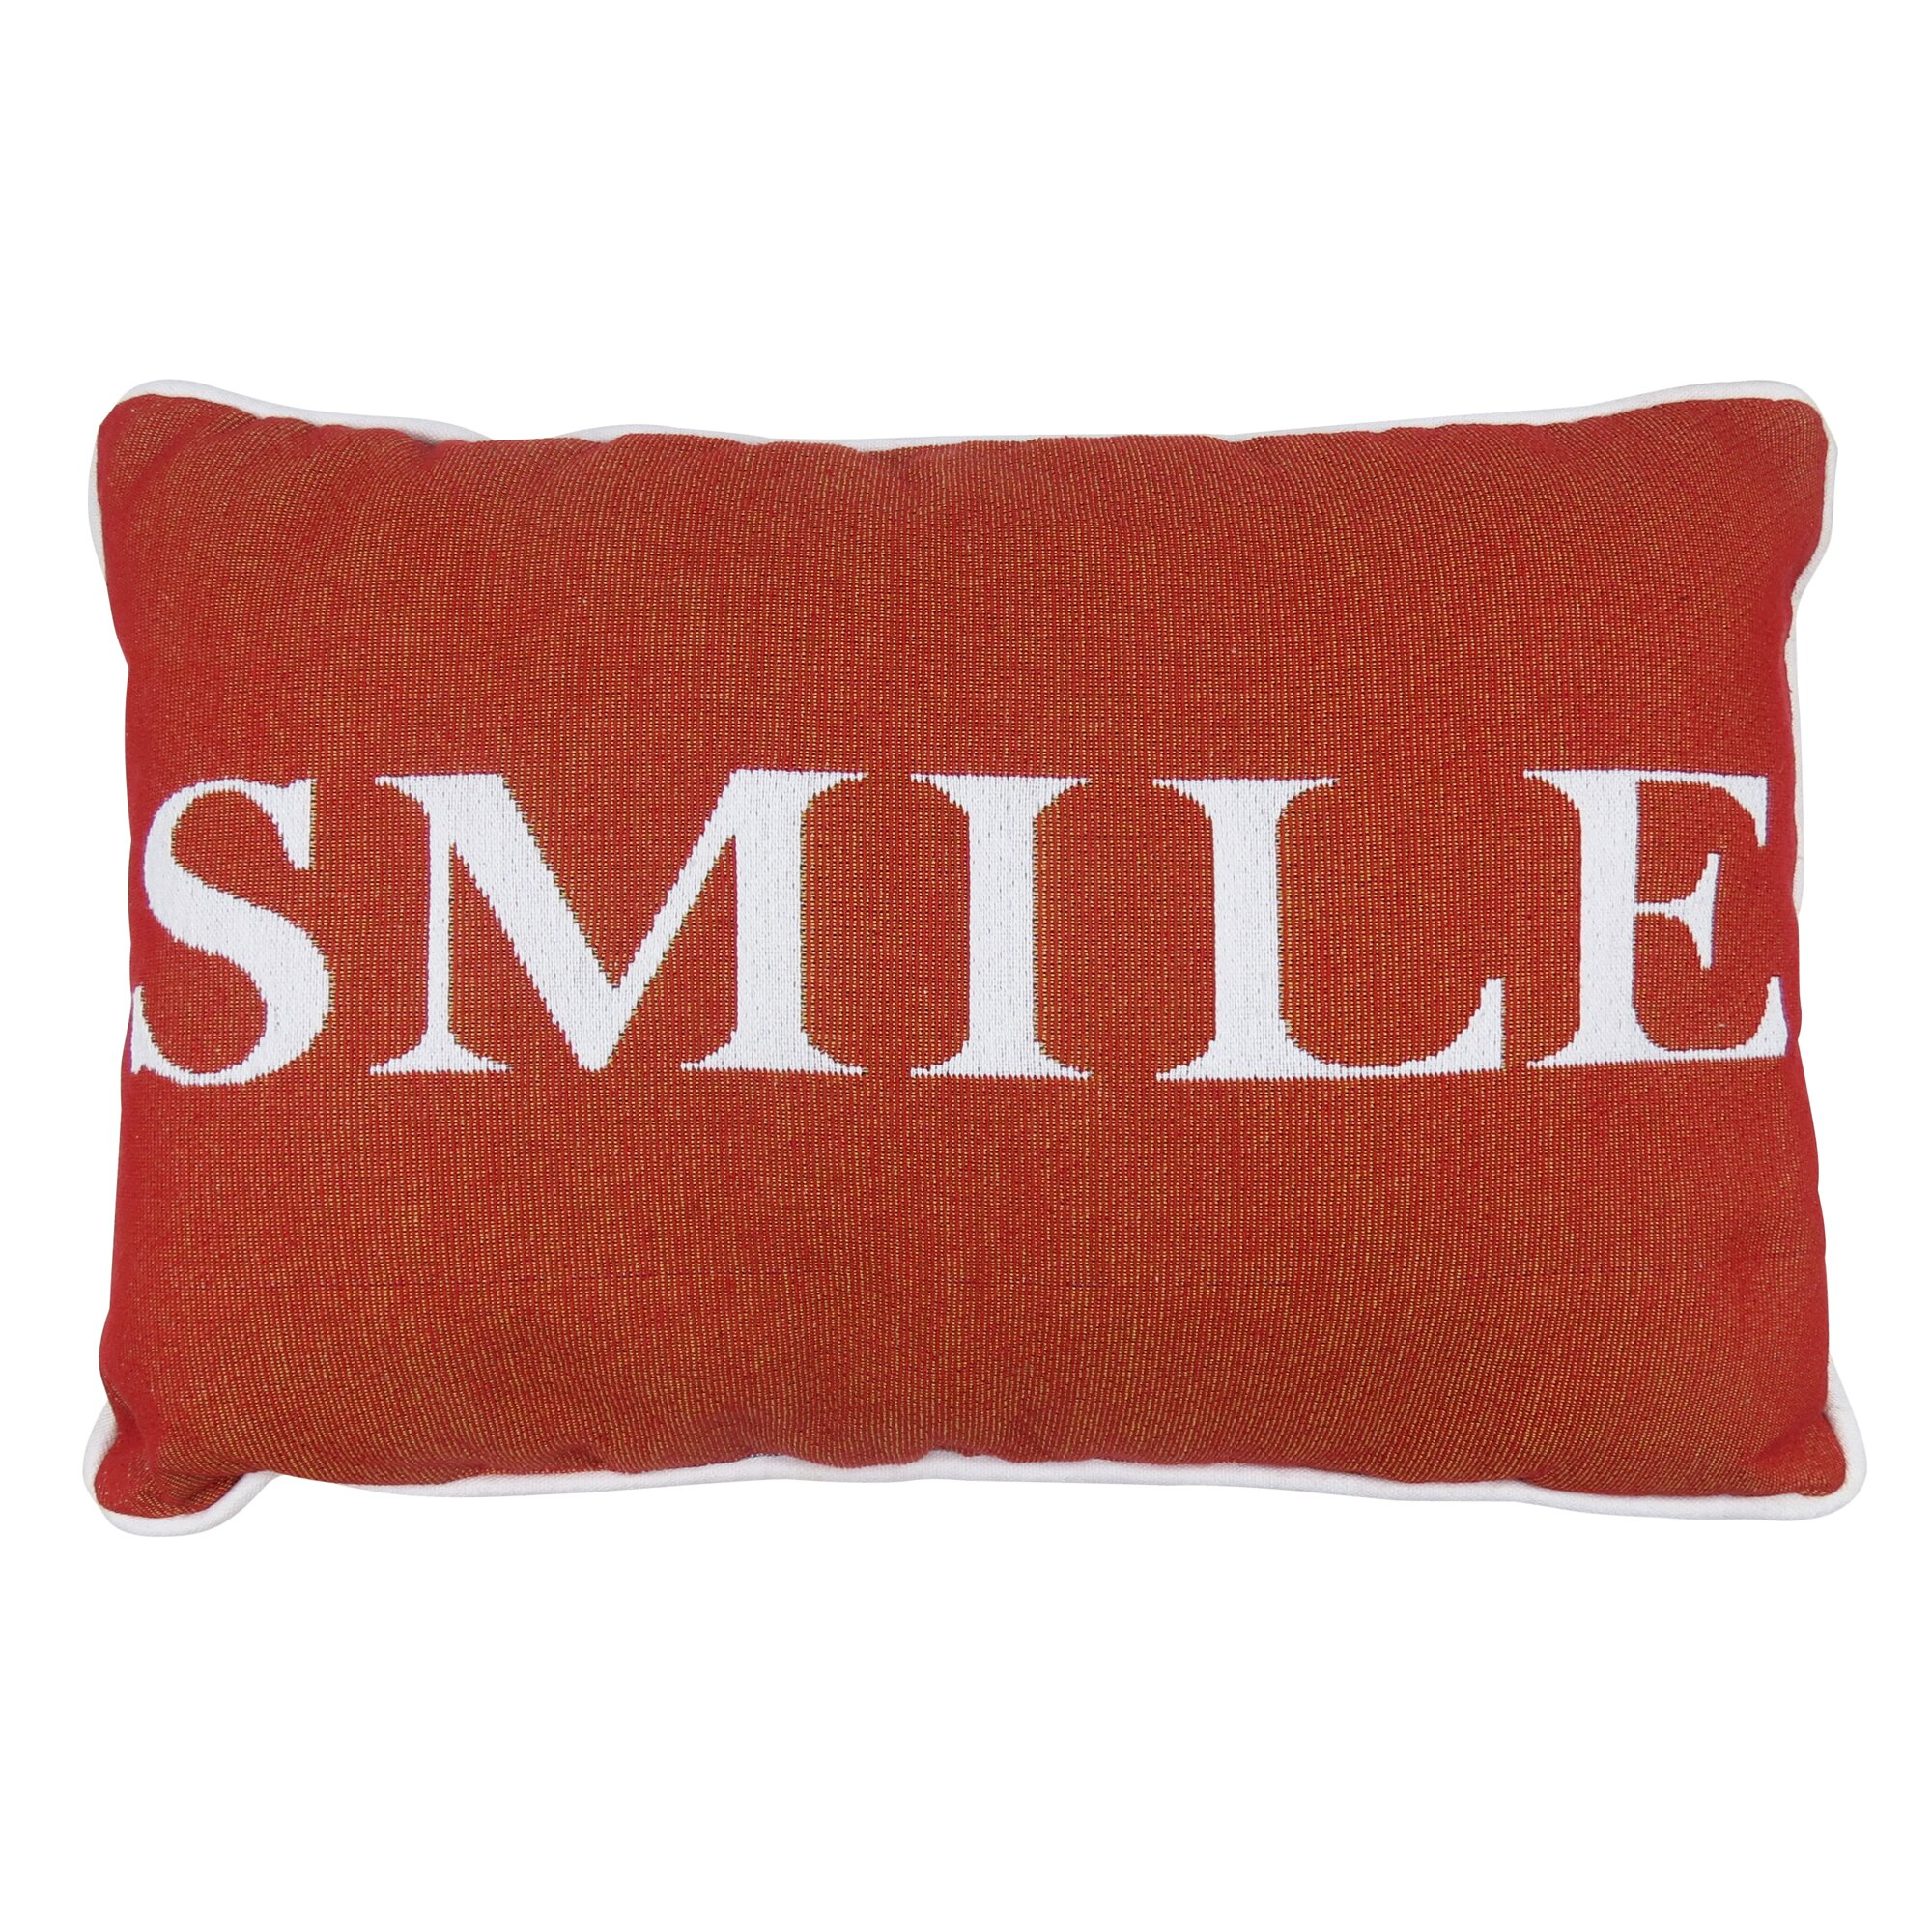 Decorative Tapestry Throw Pillows : Park B Smith Ltd Smile Tapestry Decorative Throw Pillow Wayfair